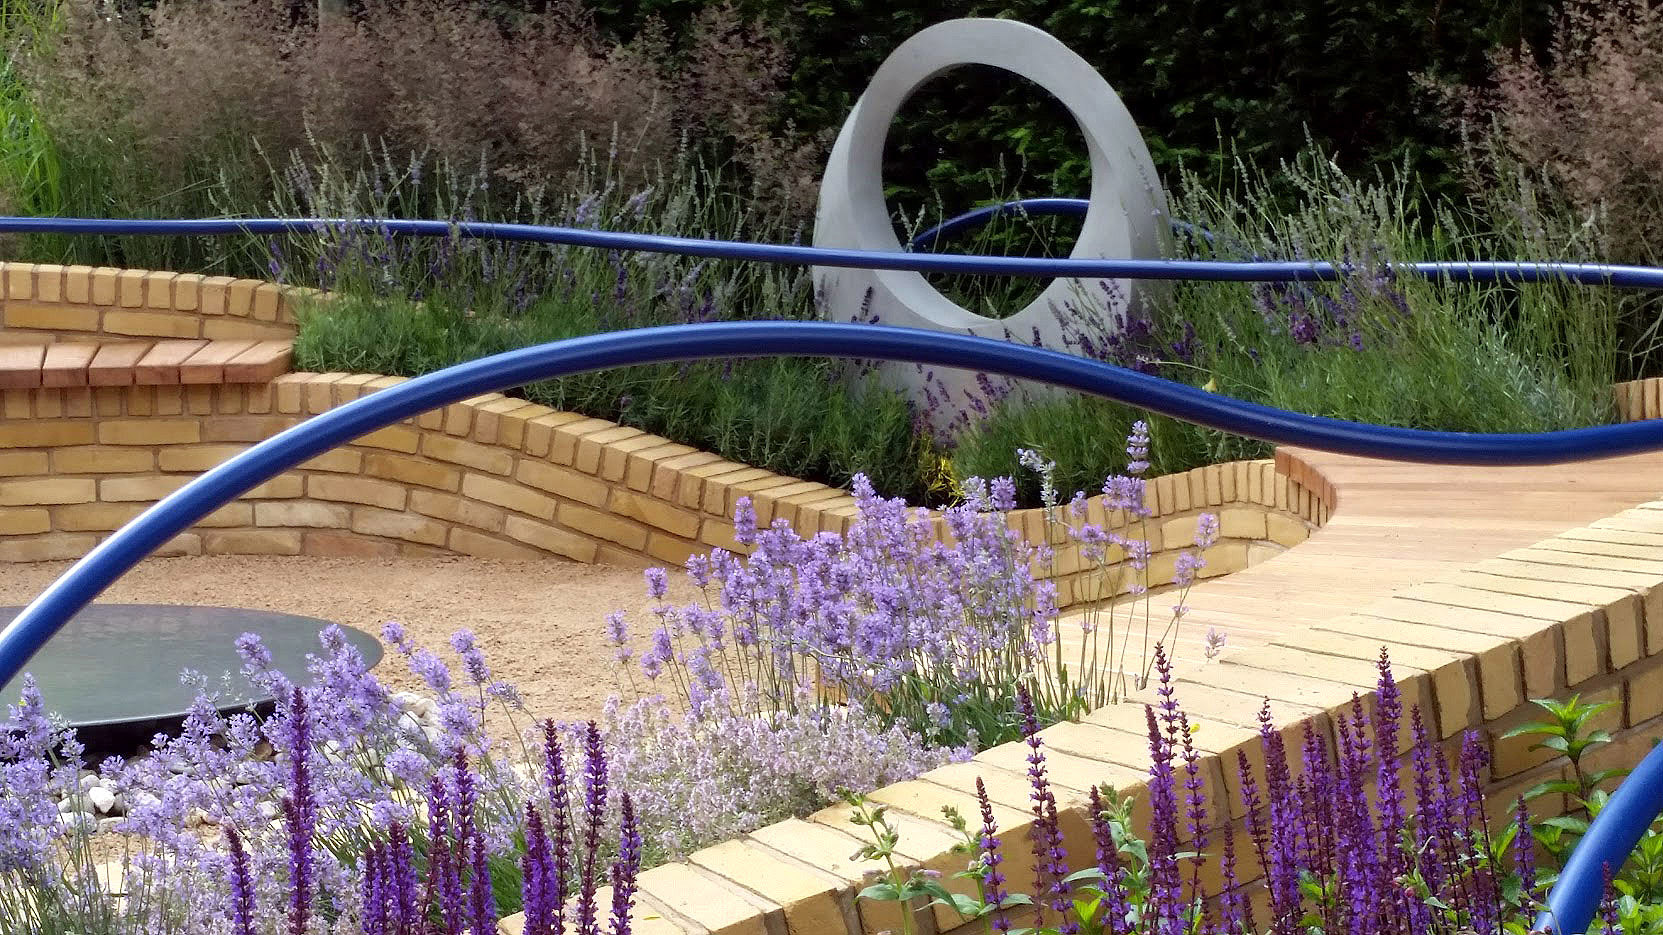 Rae Wilkinson Show Garden. Rae Wilkinson Garden and Landscape Design - Garden Designer Sussex, Surrey, London, South-East England